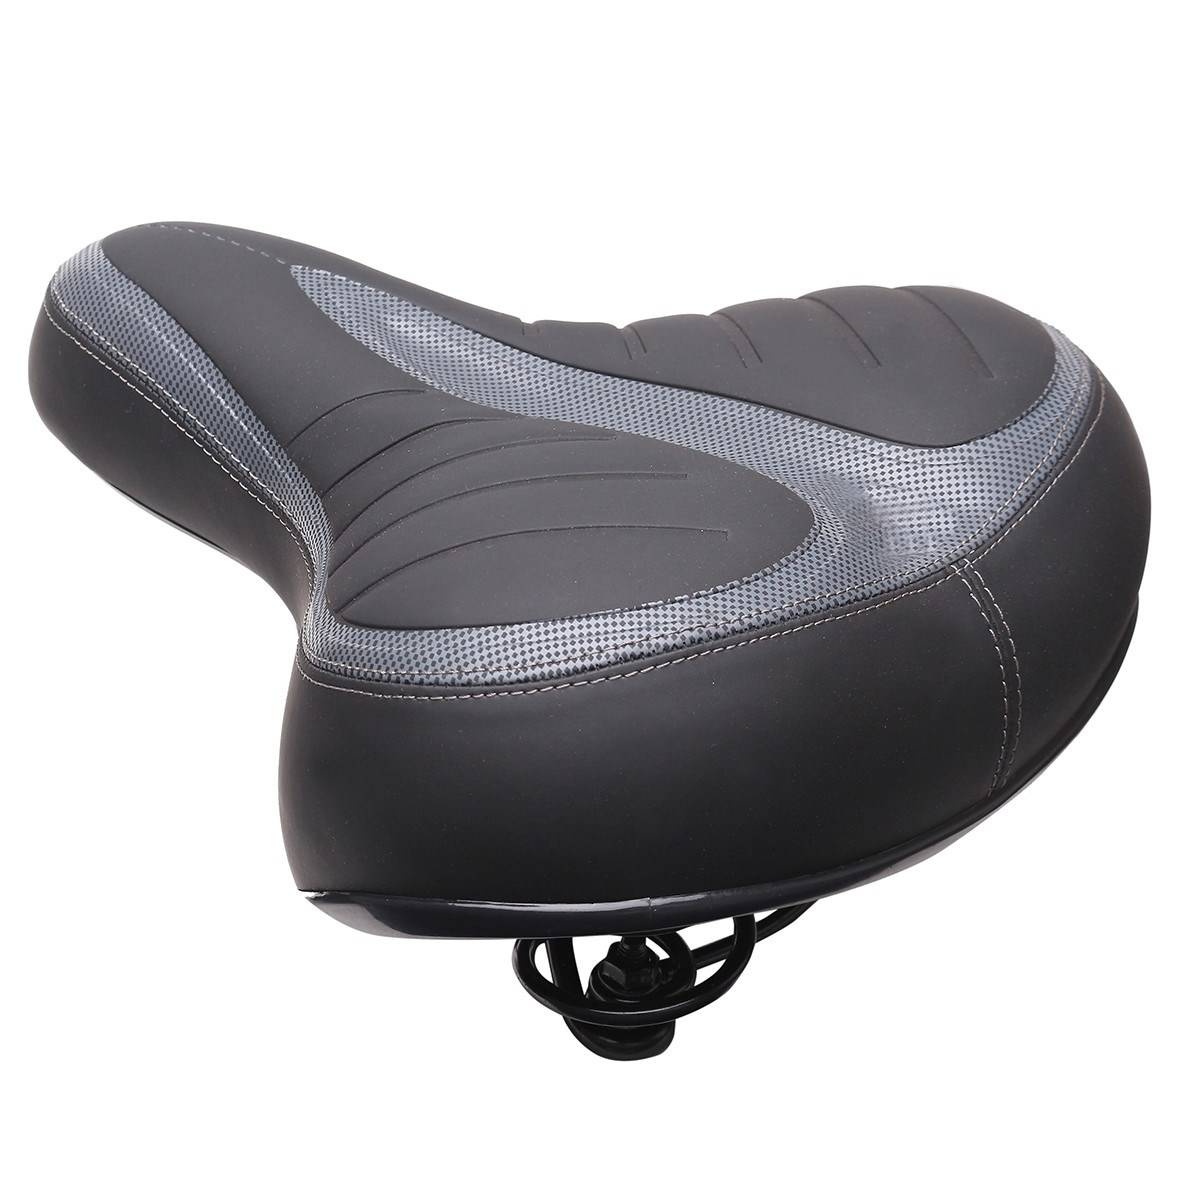 Bicycle Saddle Bicycle Parts wide road Cycling Seat Mat Comfortable Cushion Soft Seat Cover for Bike MTB Bike Bicycle parts 2017 sale selim selle sella carbonio wide bicycle seat thicken bike saddle bicicleta cycling mtb cushion asiento sponge soft